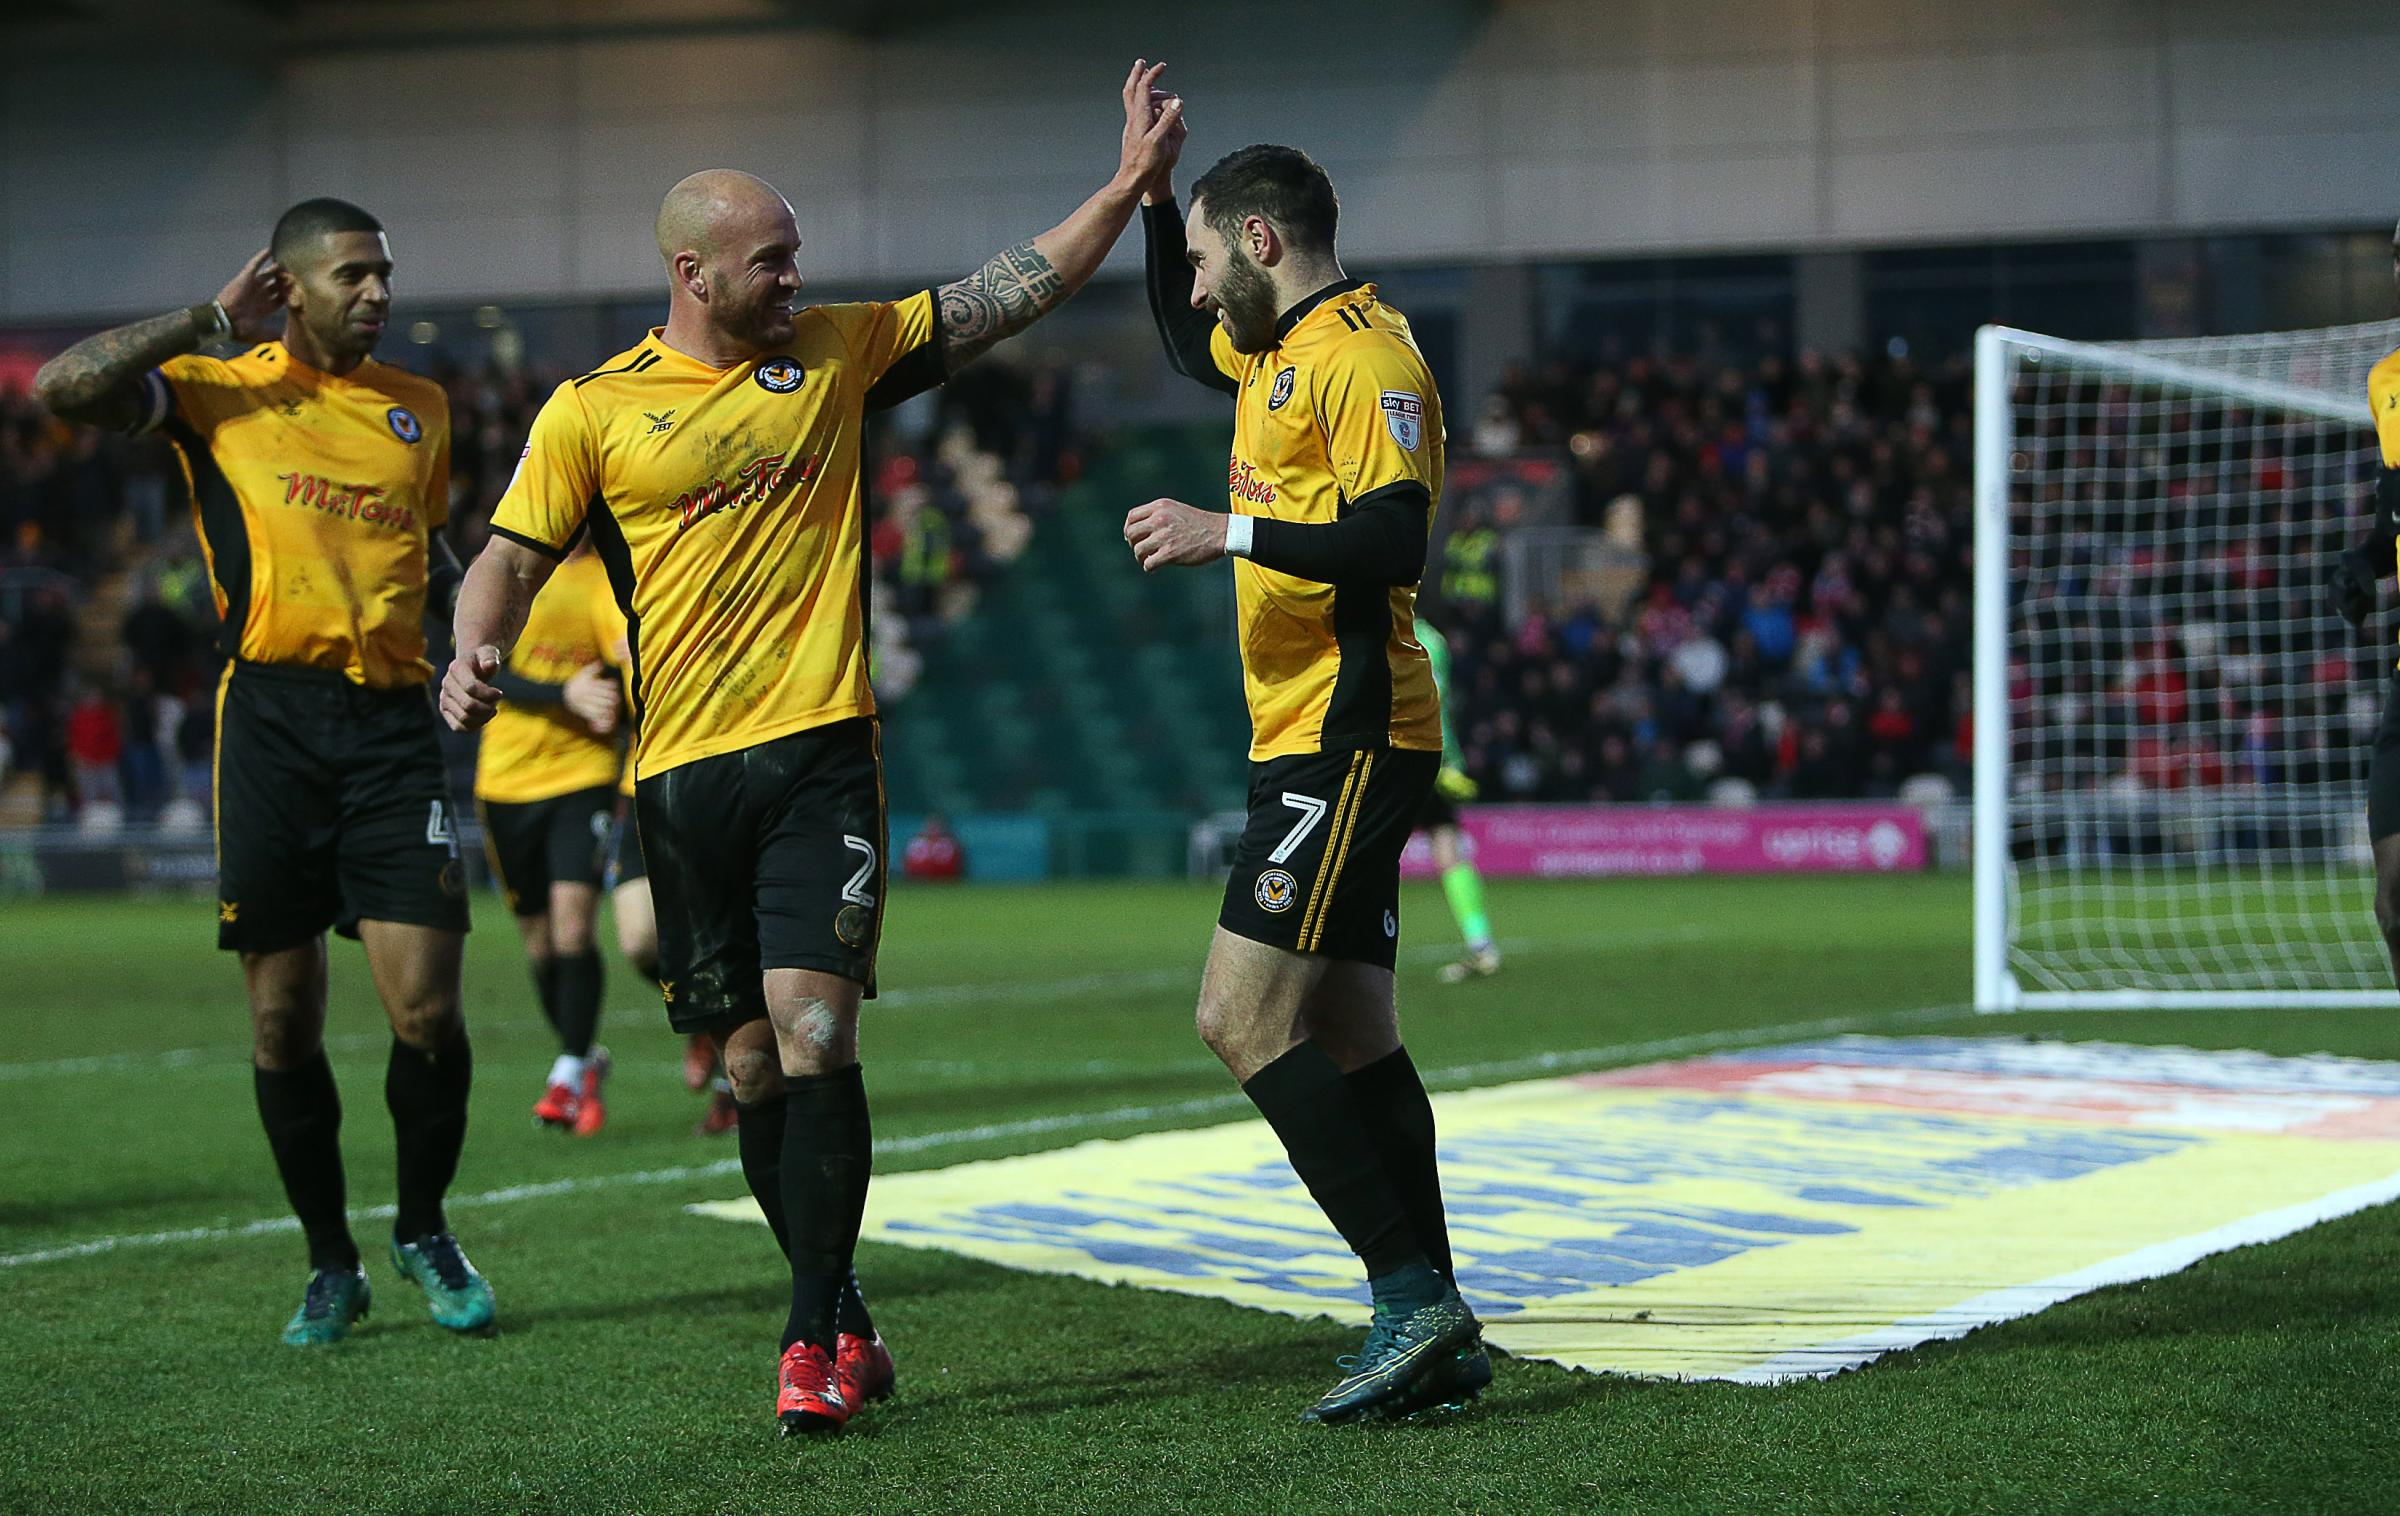 VICTORY: Robbie Willmott's winner against Exeter City kept Newport County in the League Two play-off mix. Picture: Huw Evans Agency